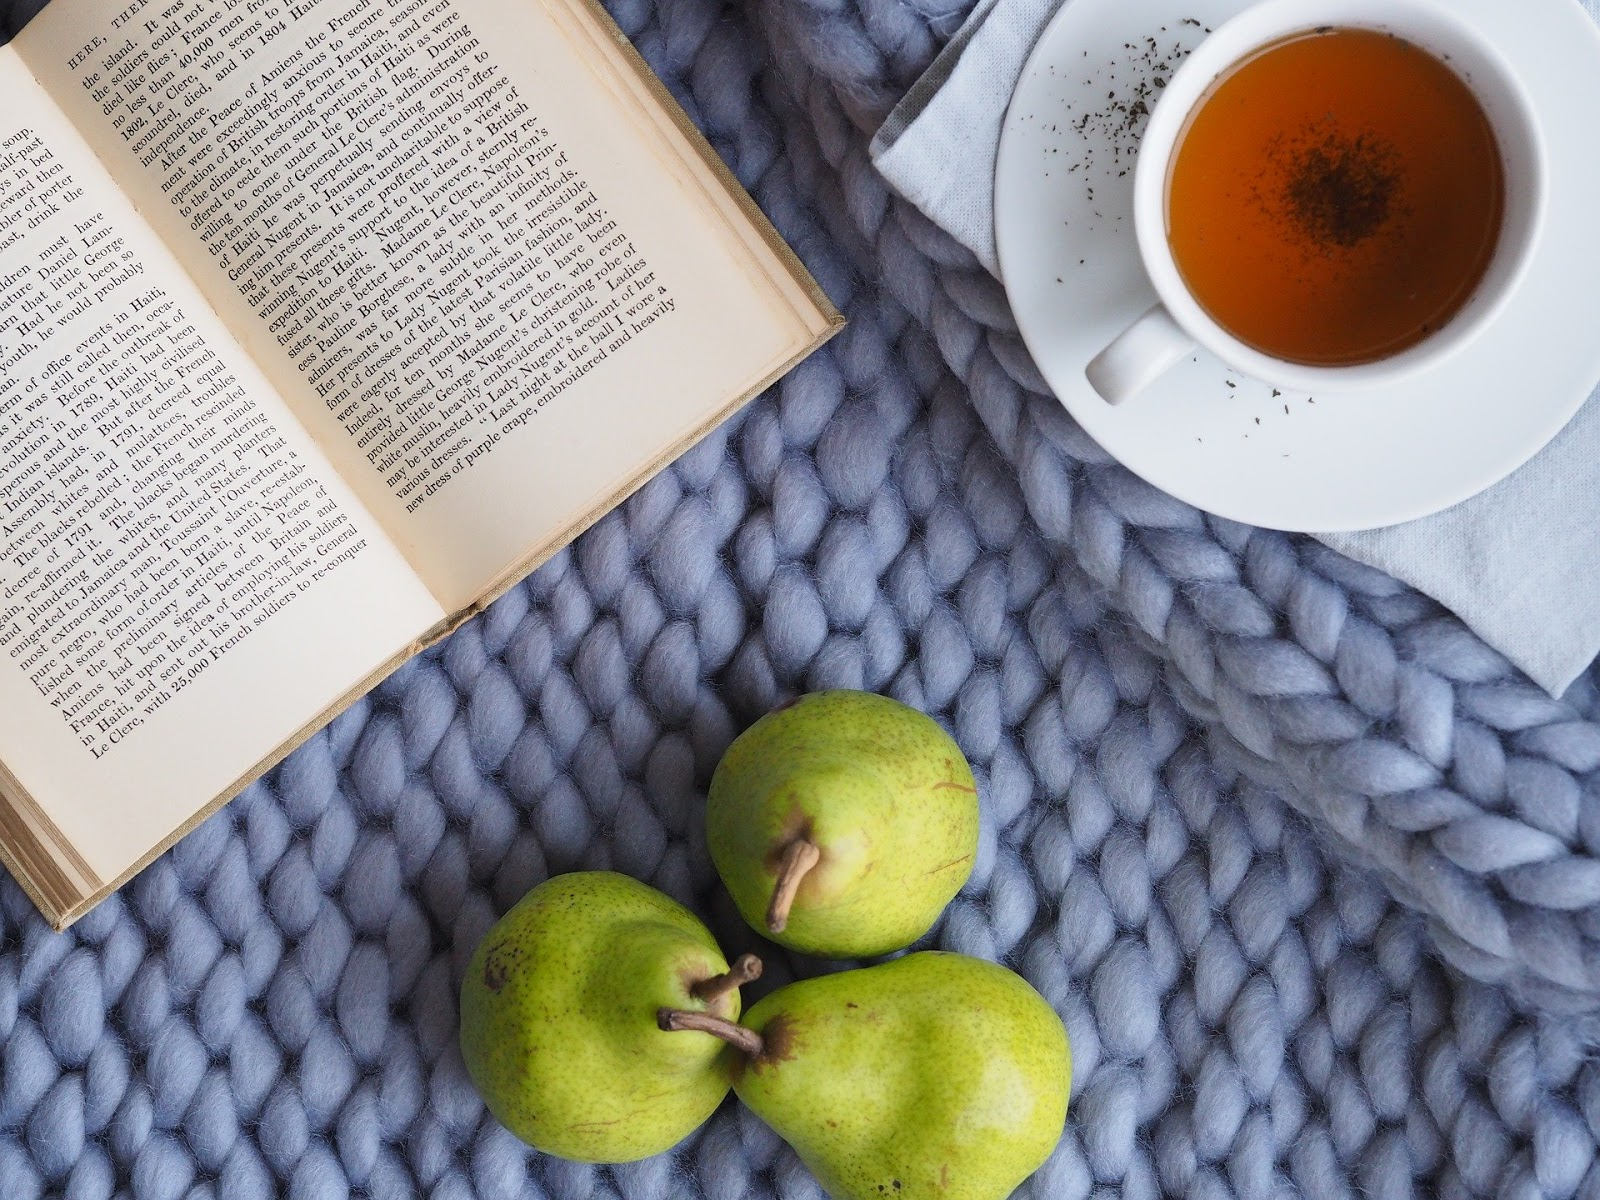 A book, a cup of tea on a saucer, and three pears on a purple woven blanket